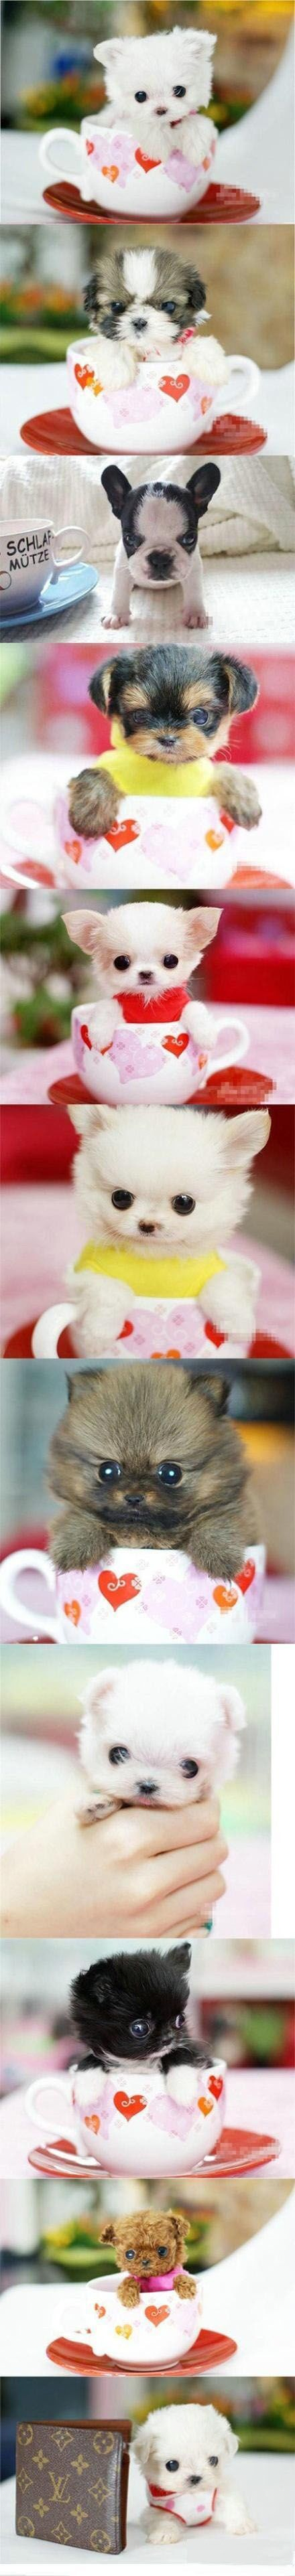 Cutest teacup puppies EVER!!